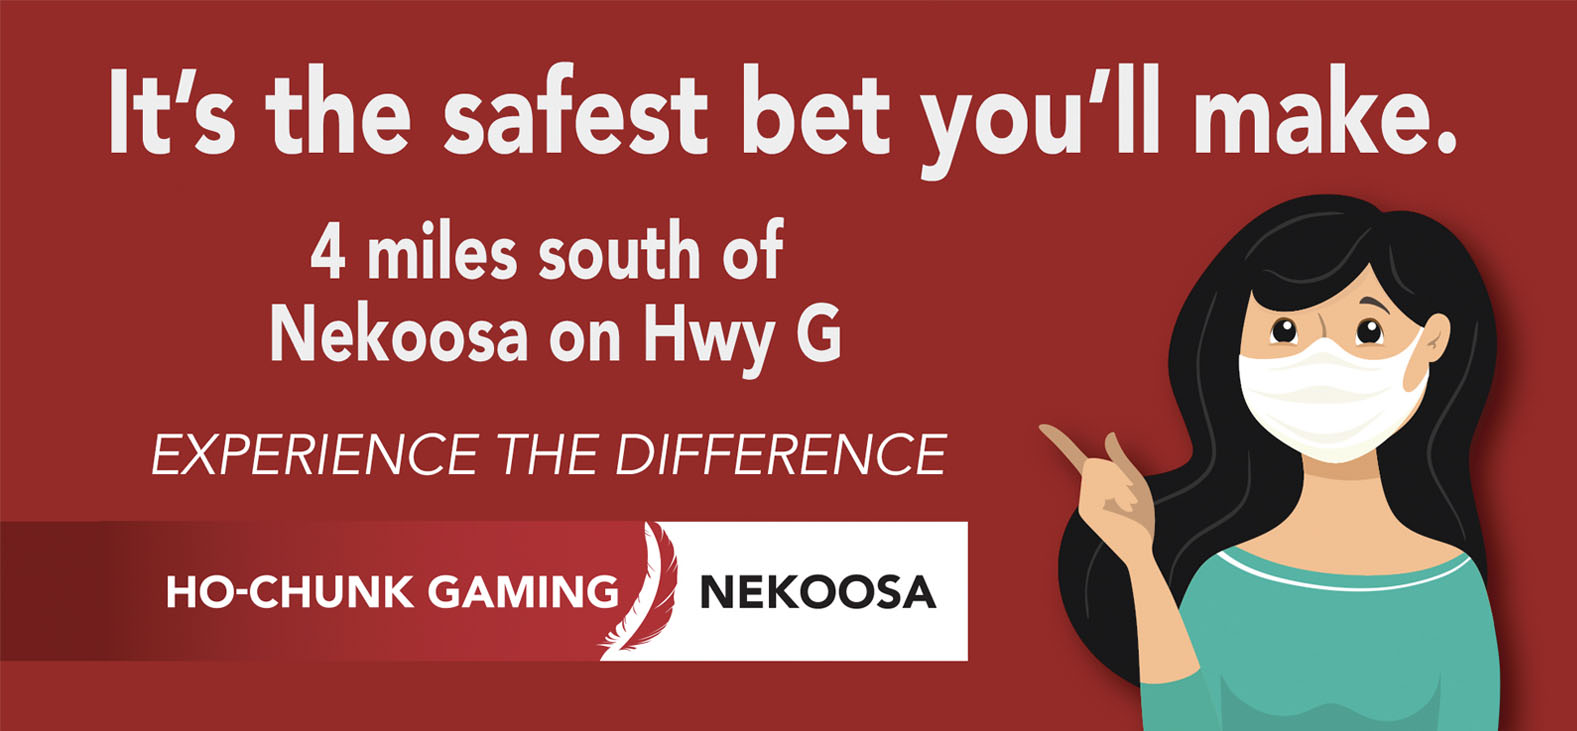 Ho-Chunk Gaming Nekoosa we don't press our luck with safety graphic